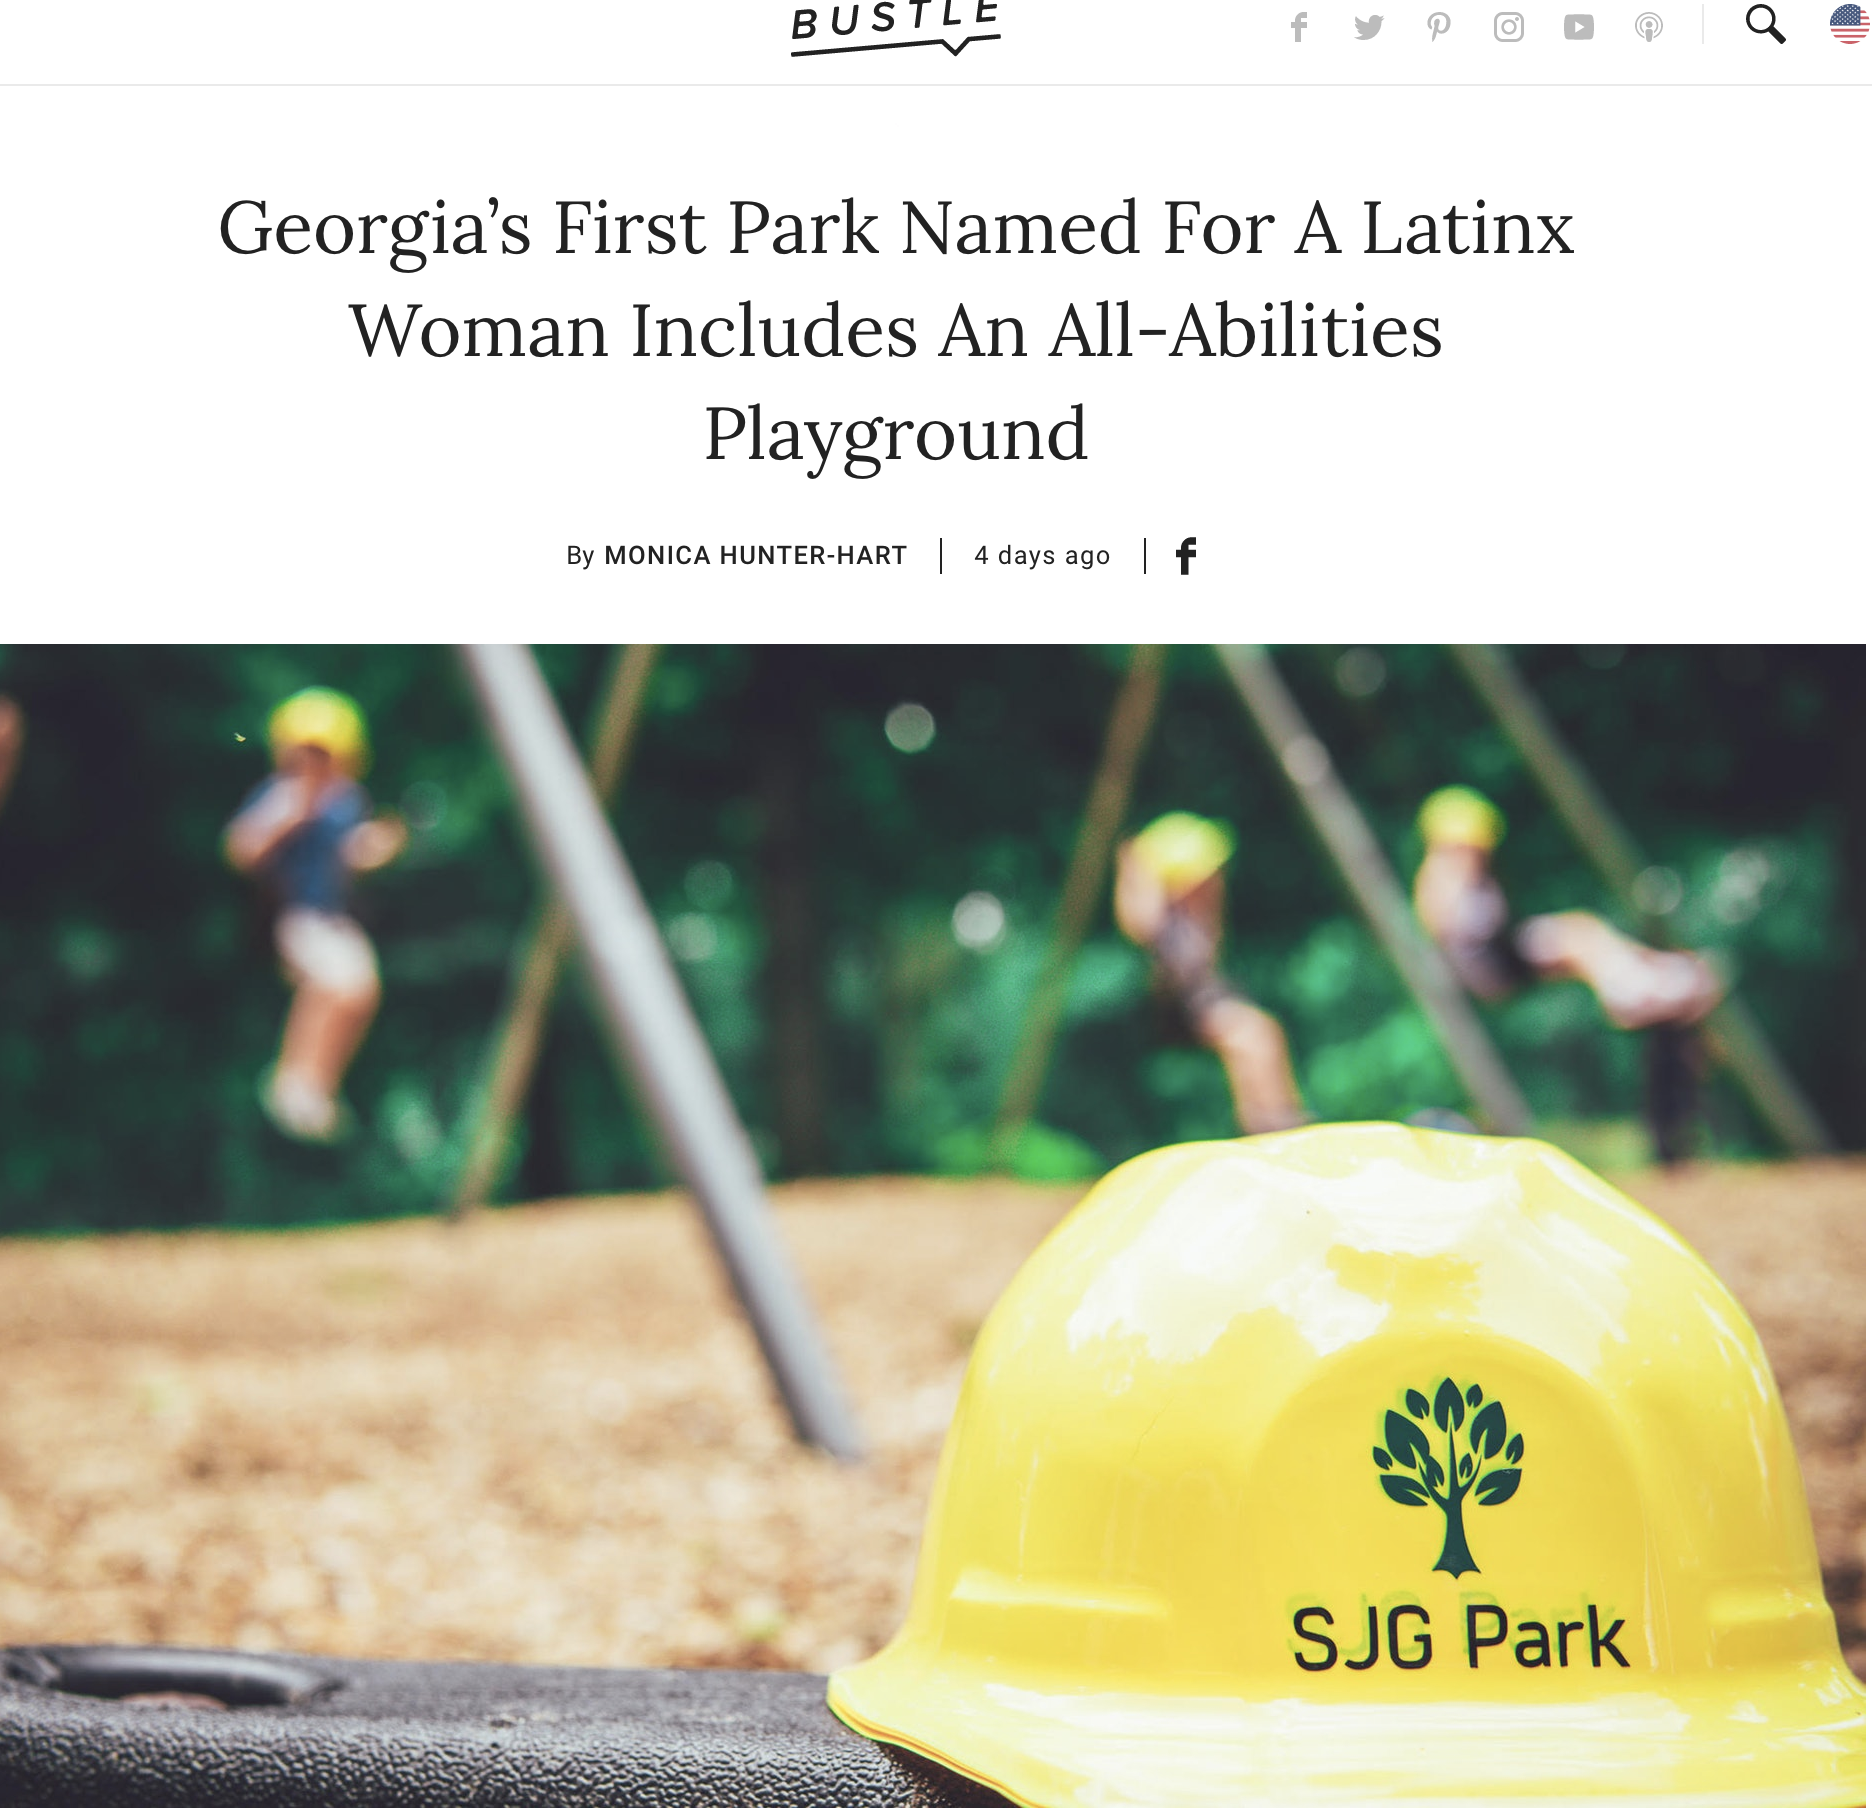 Georgia's First Park Named For A Latinx Woman Includes An All-Abilities Playground,  October, 2018, Bustle